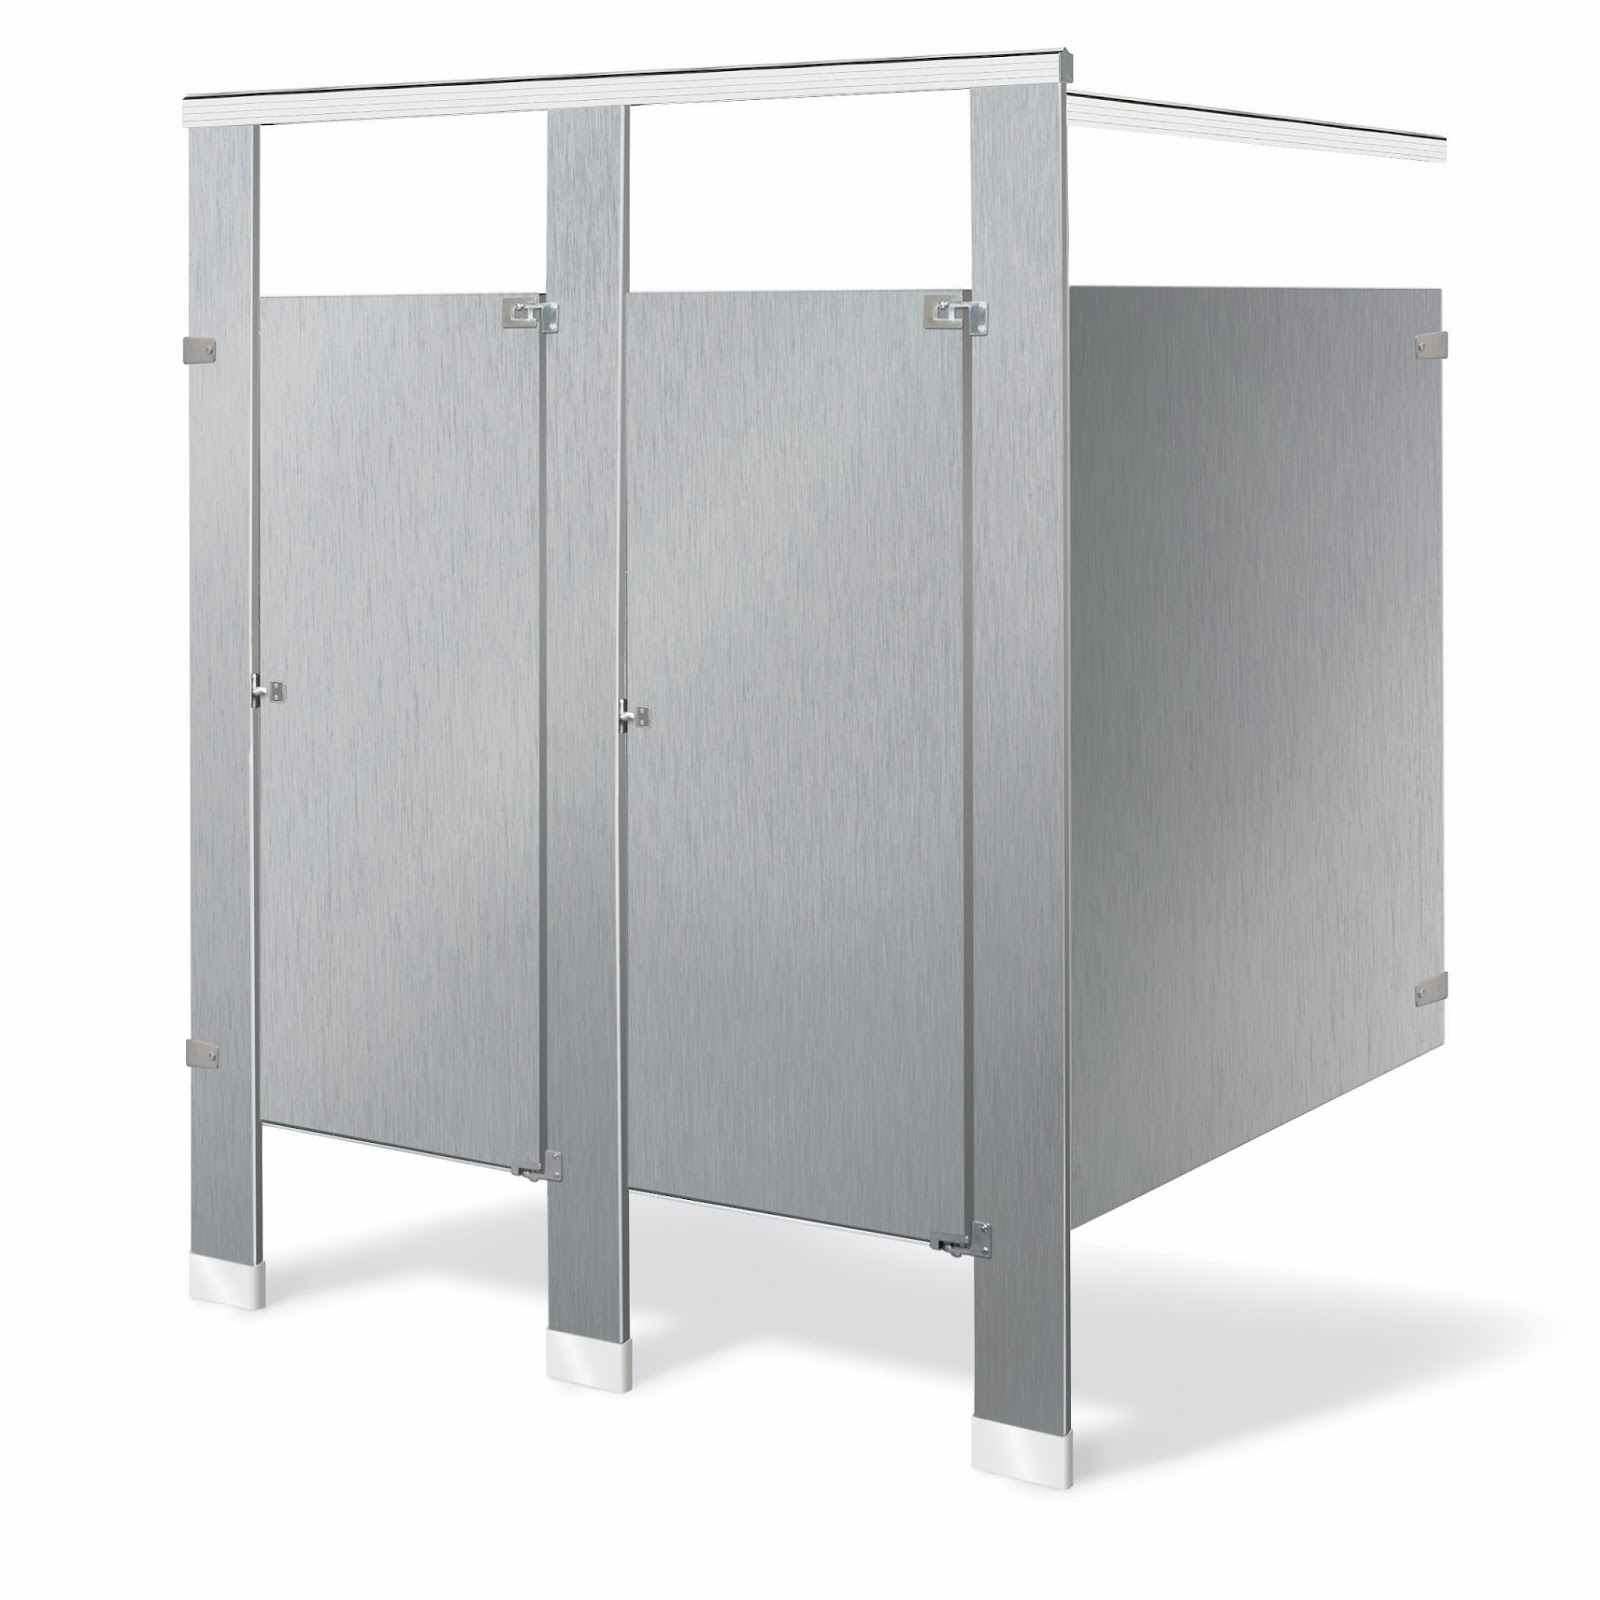 Stainless Steel Partitions Review Article